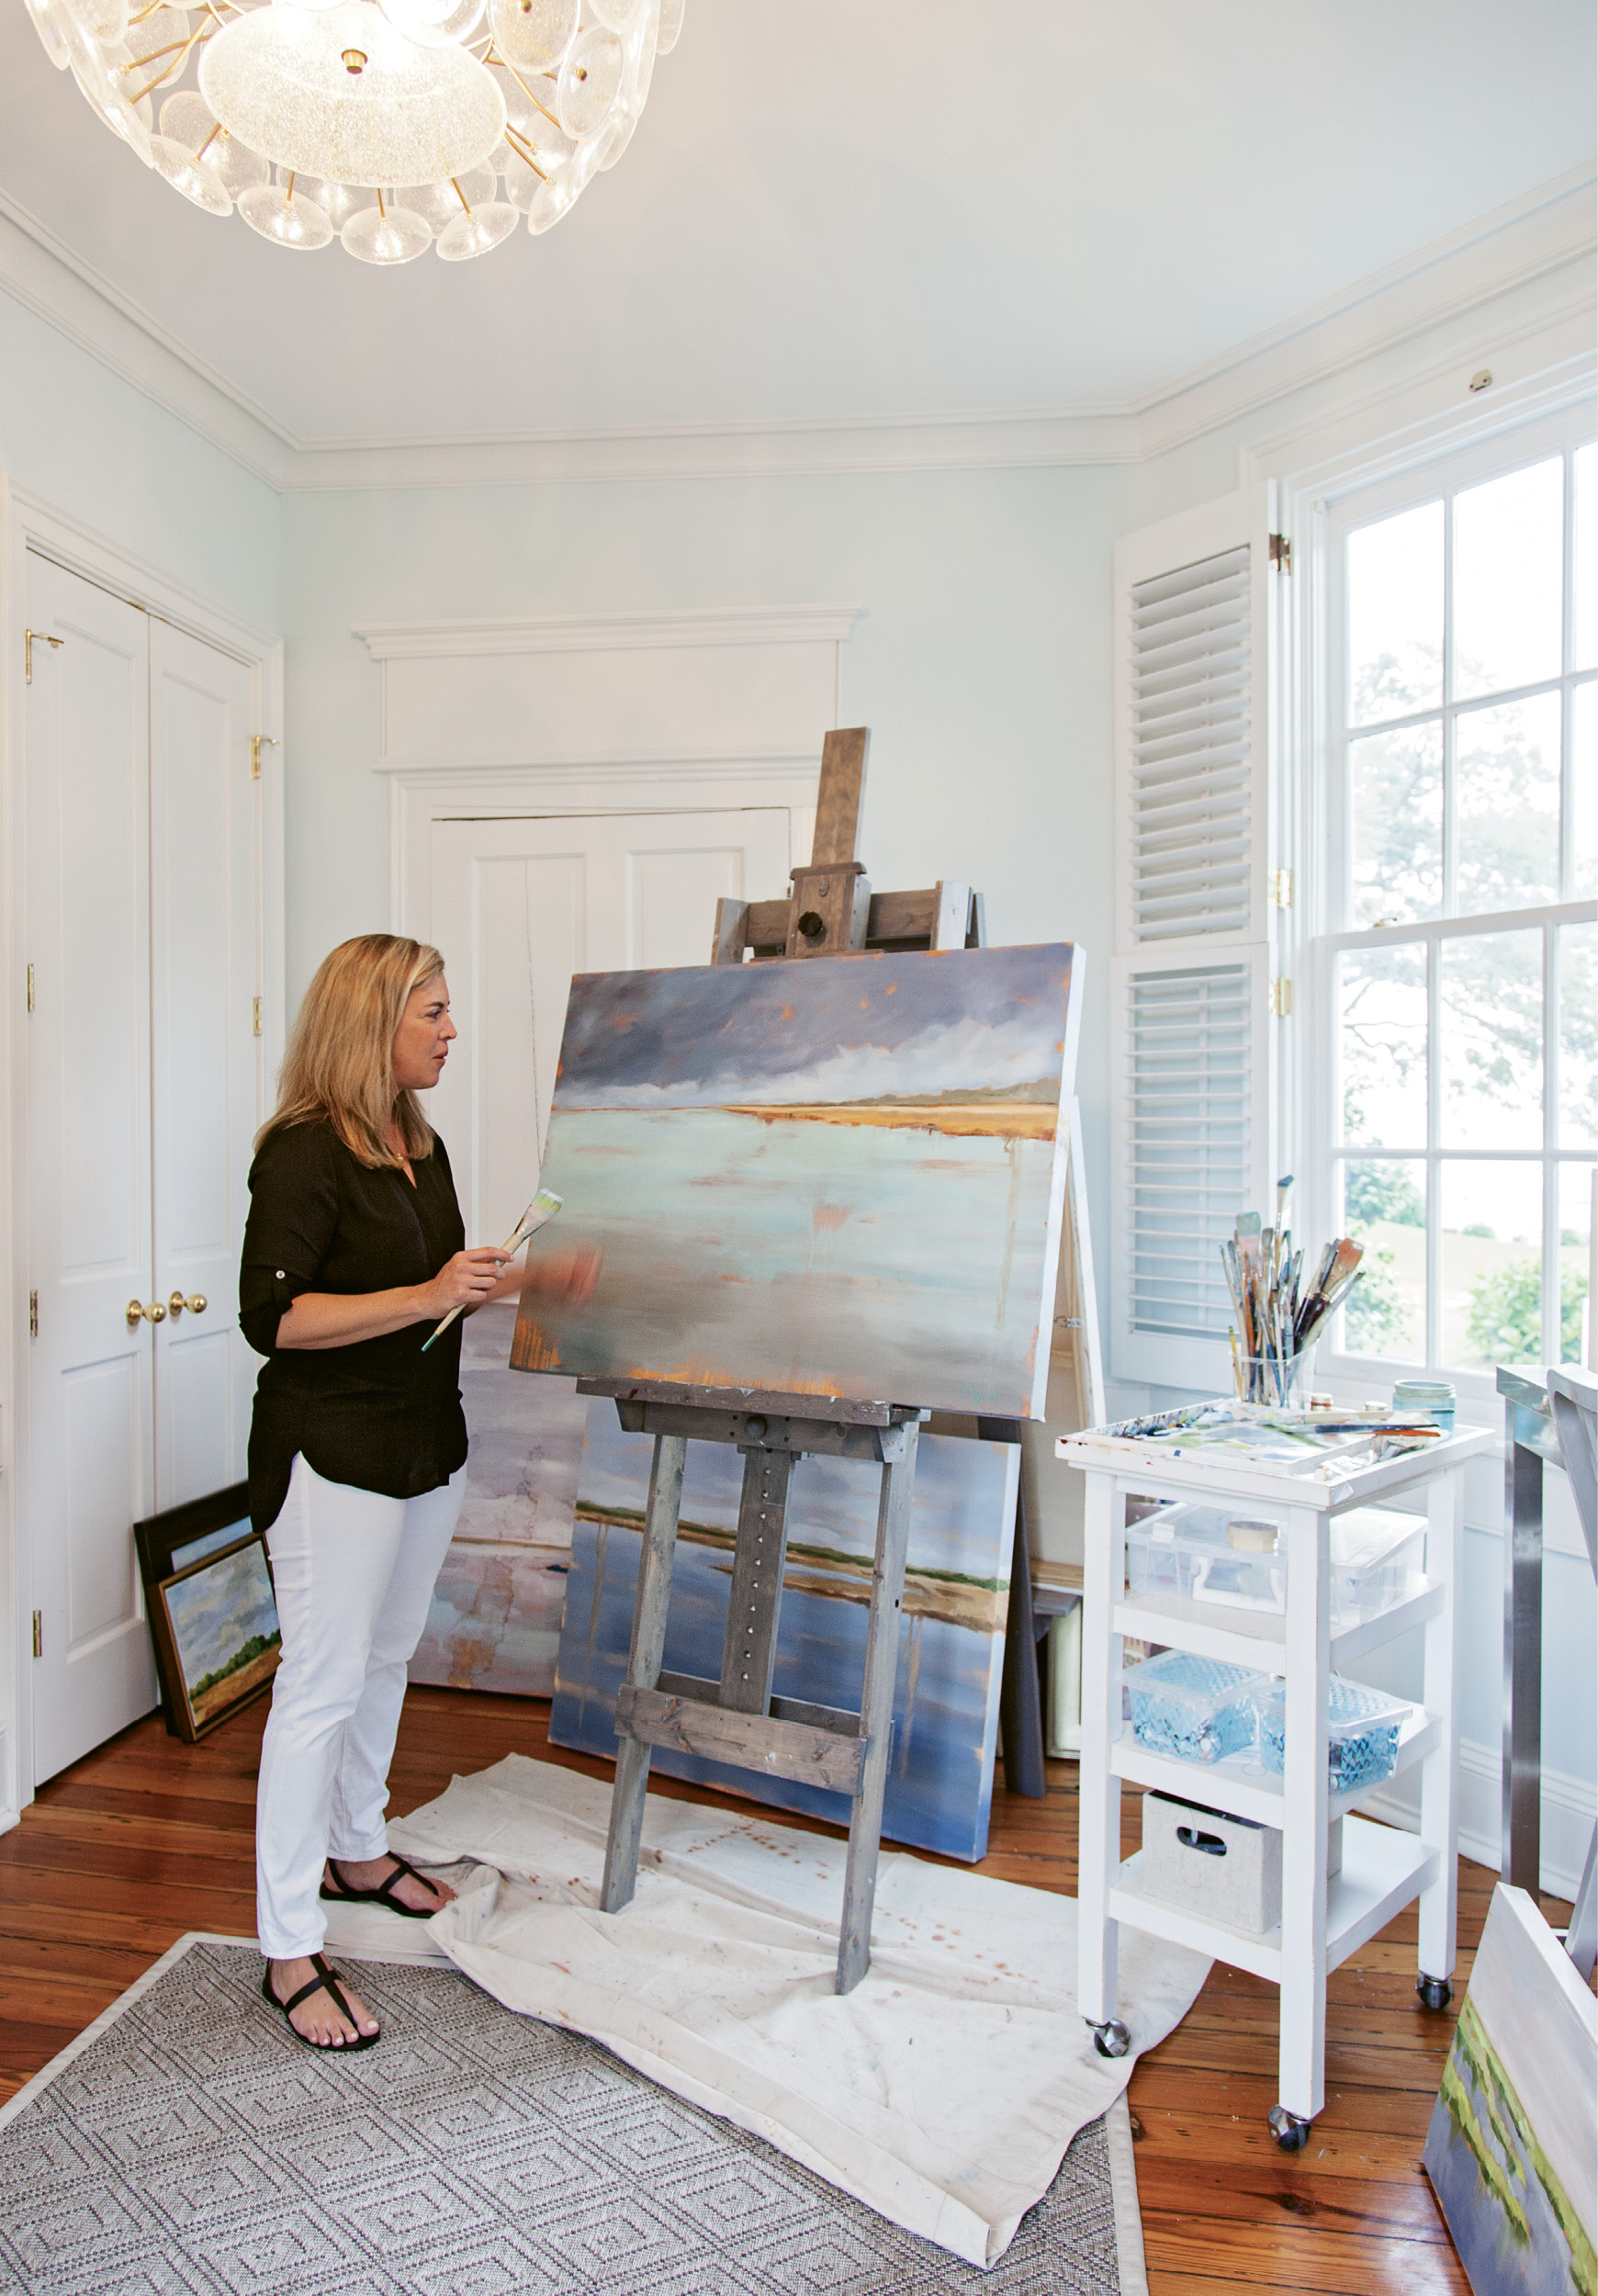 The breathtaking harbor view from Shannon's airy studio window provides the Lowcountry native with ever-evolving inspiration for her abstract landscape paintings, which are available through the Charleston Artist Collective.